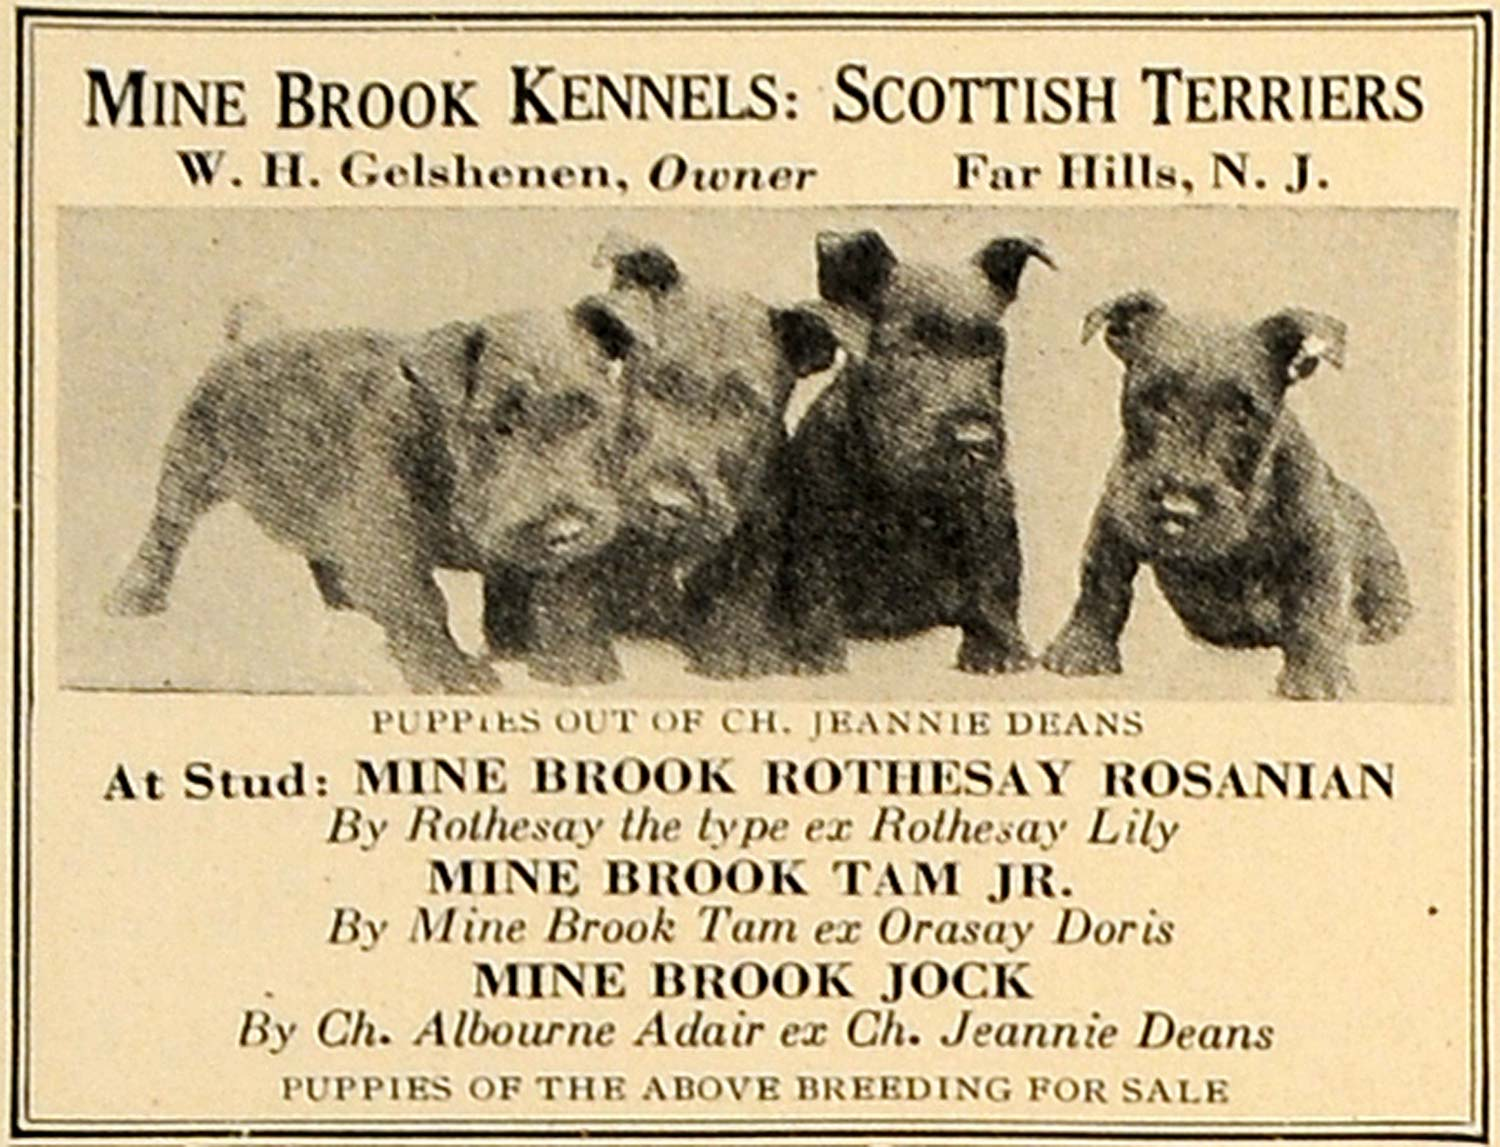 1923 Ad Mine Brook Kennels Scottish Terriers Gelshenen - ORIGINAL CL4